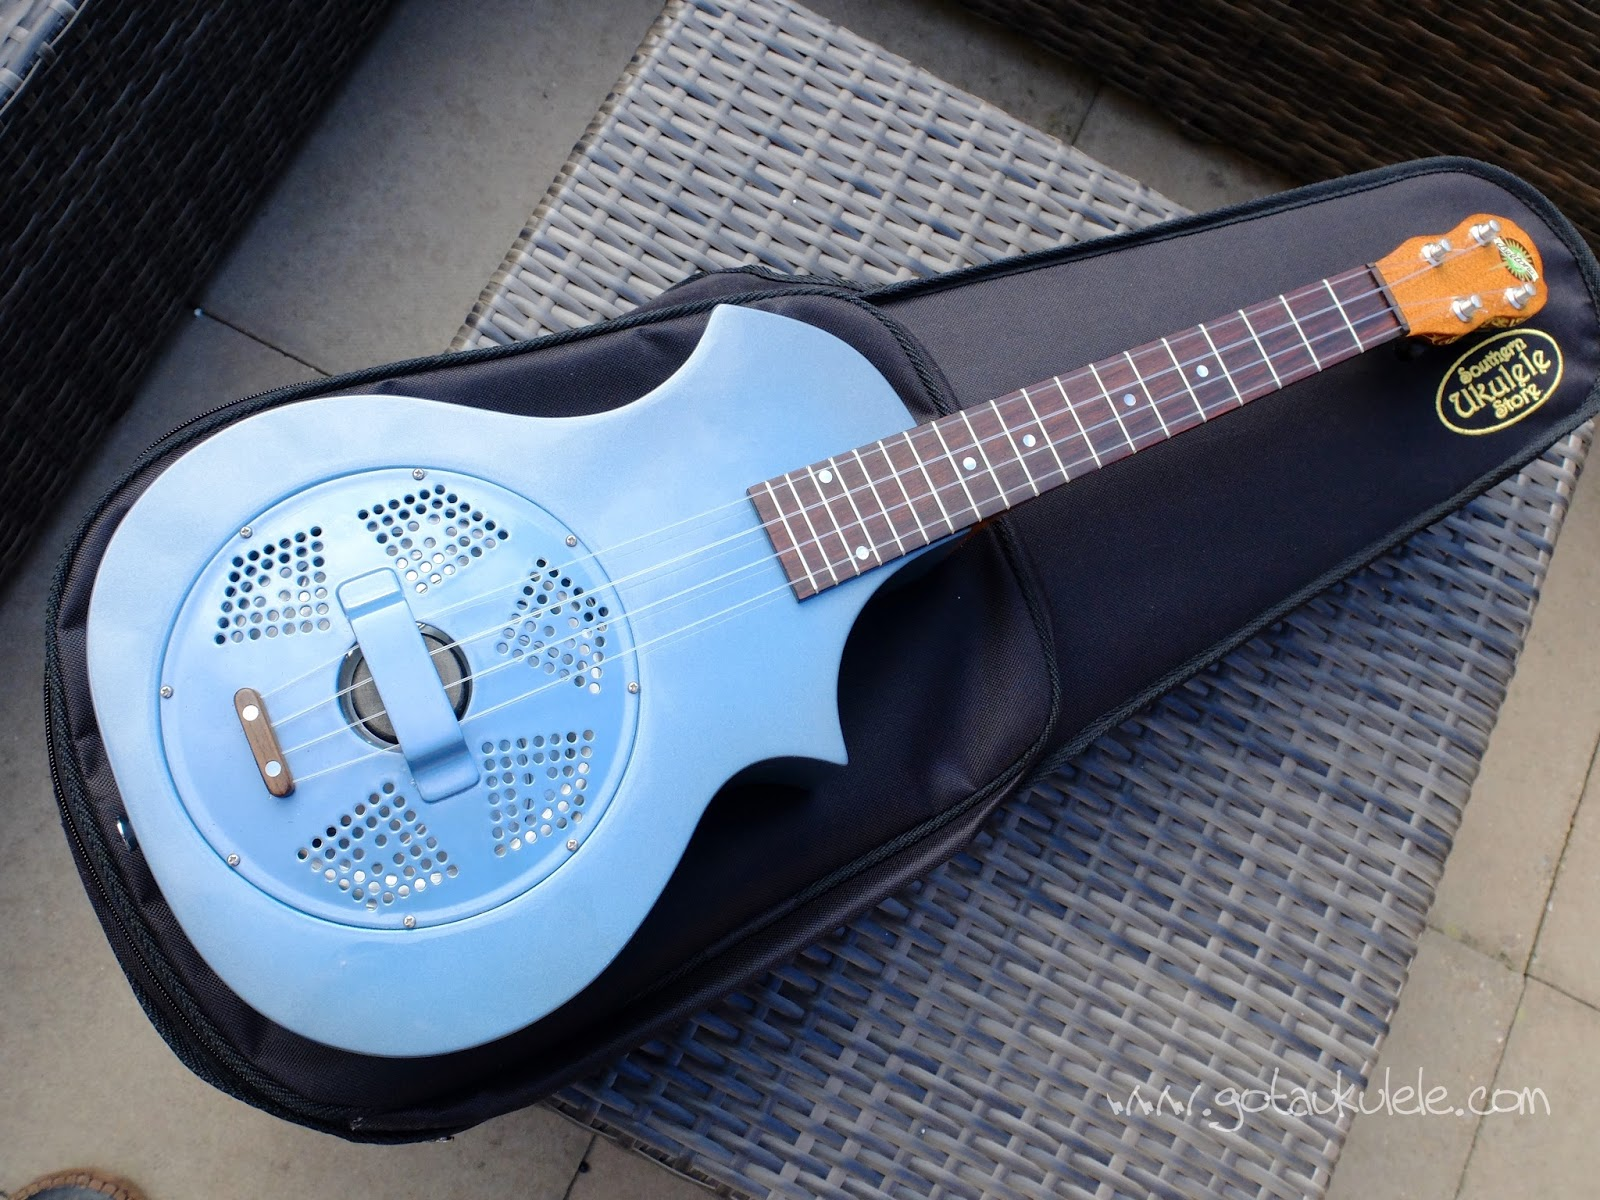 Beltona style 2 tenor resonator ukulele review hexwebz Gallery